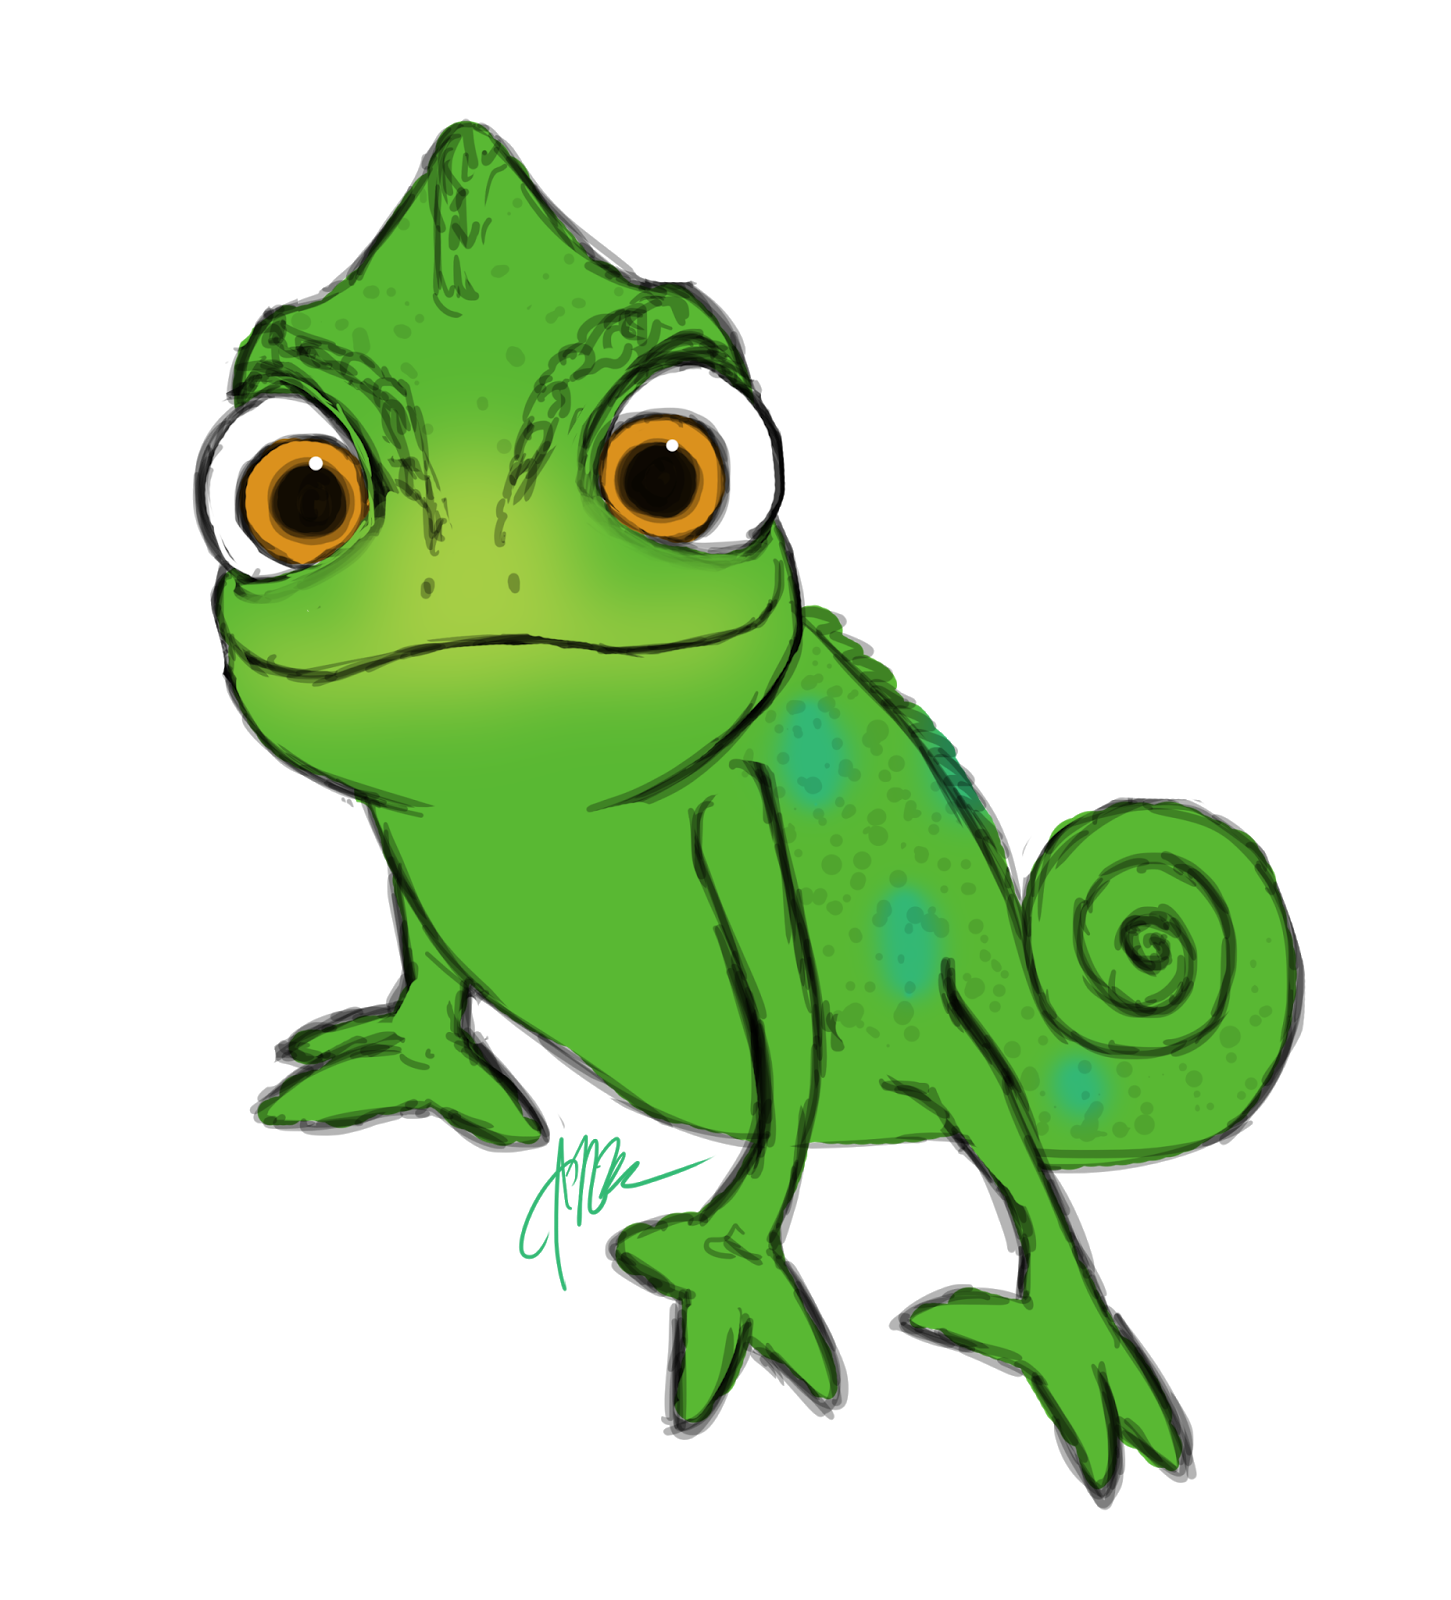 Pascal drawing. Collection of rapunzel